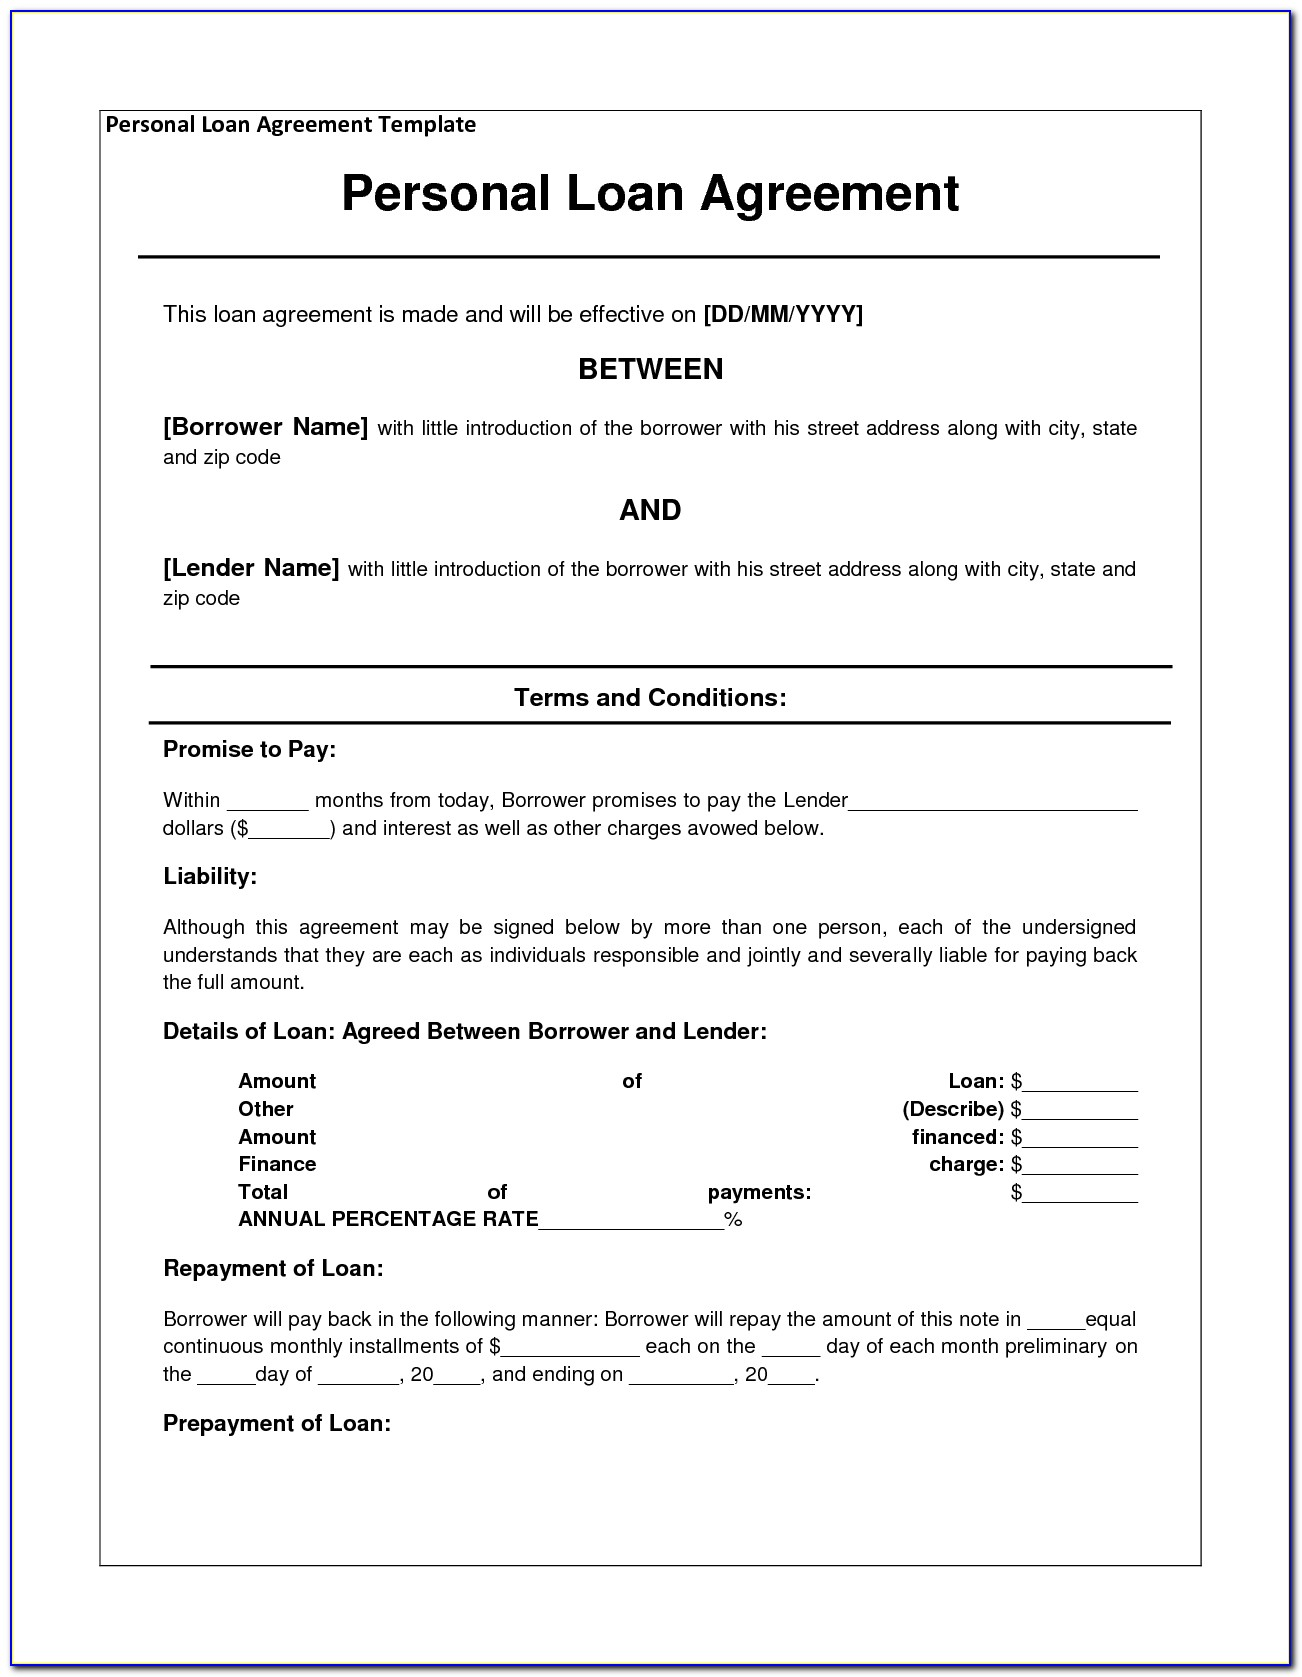 Personal Loan Document Template Free